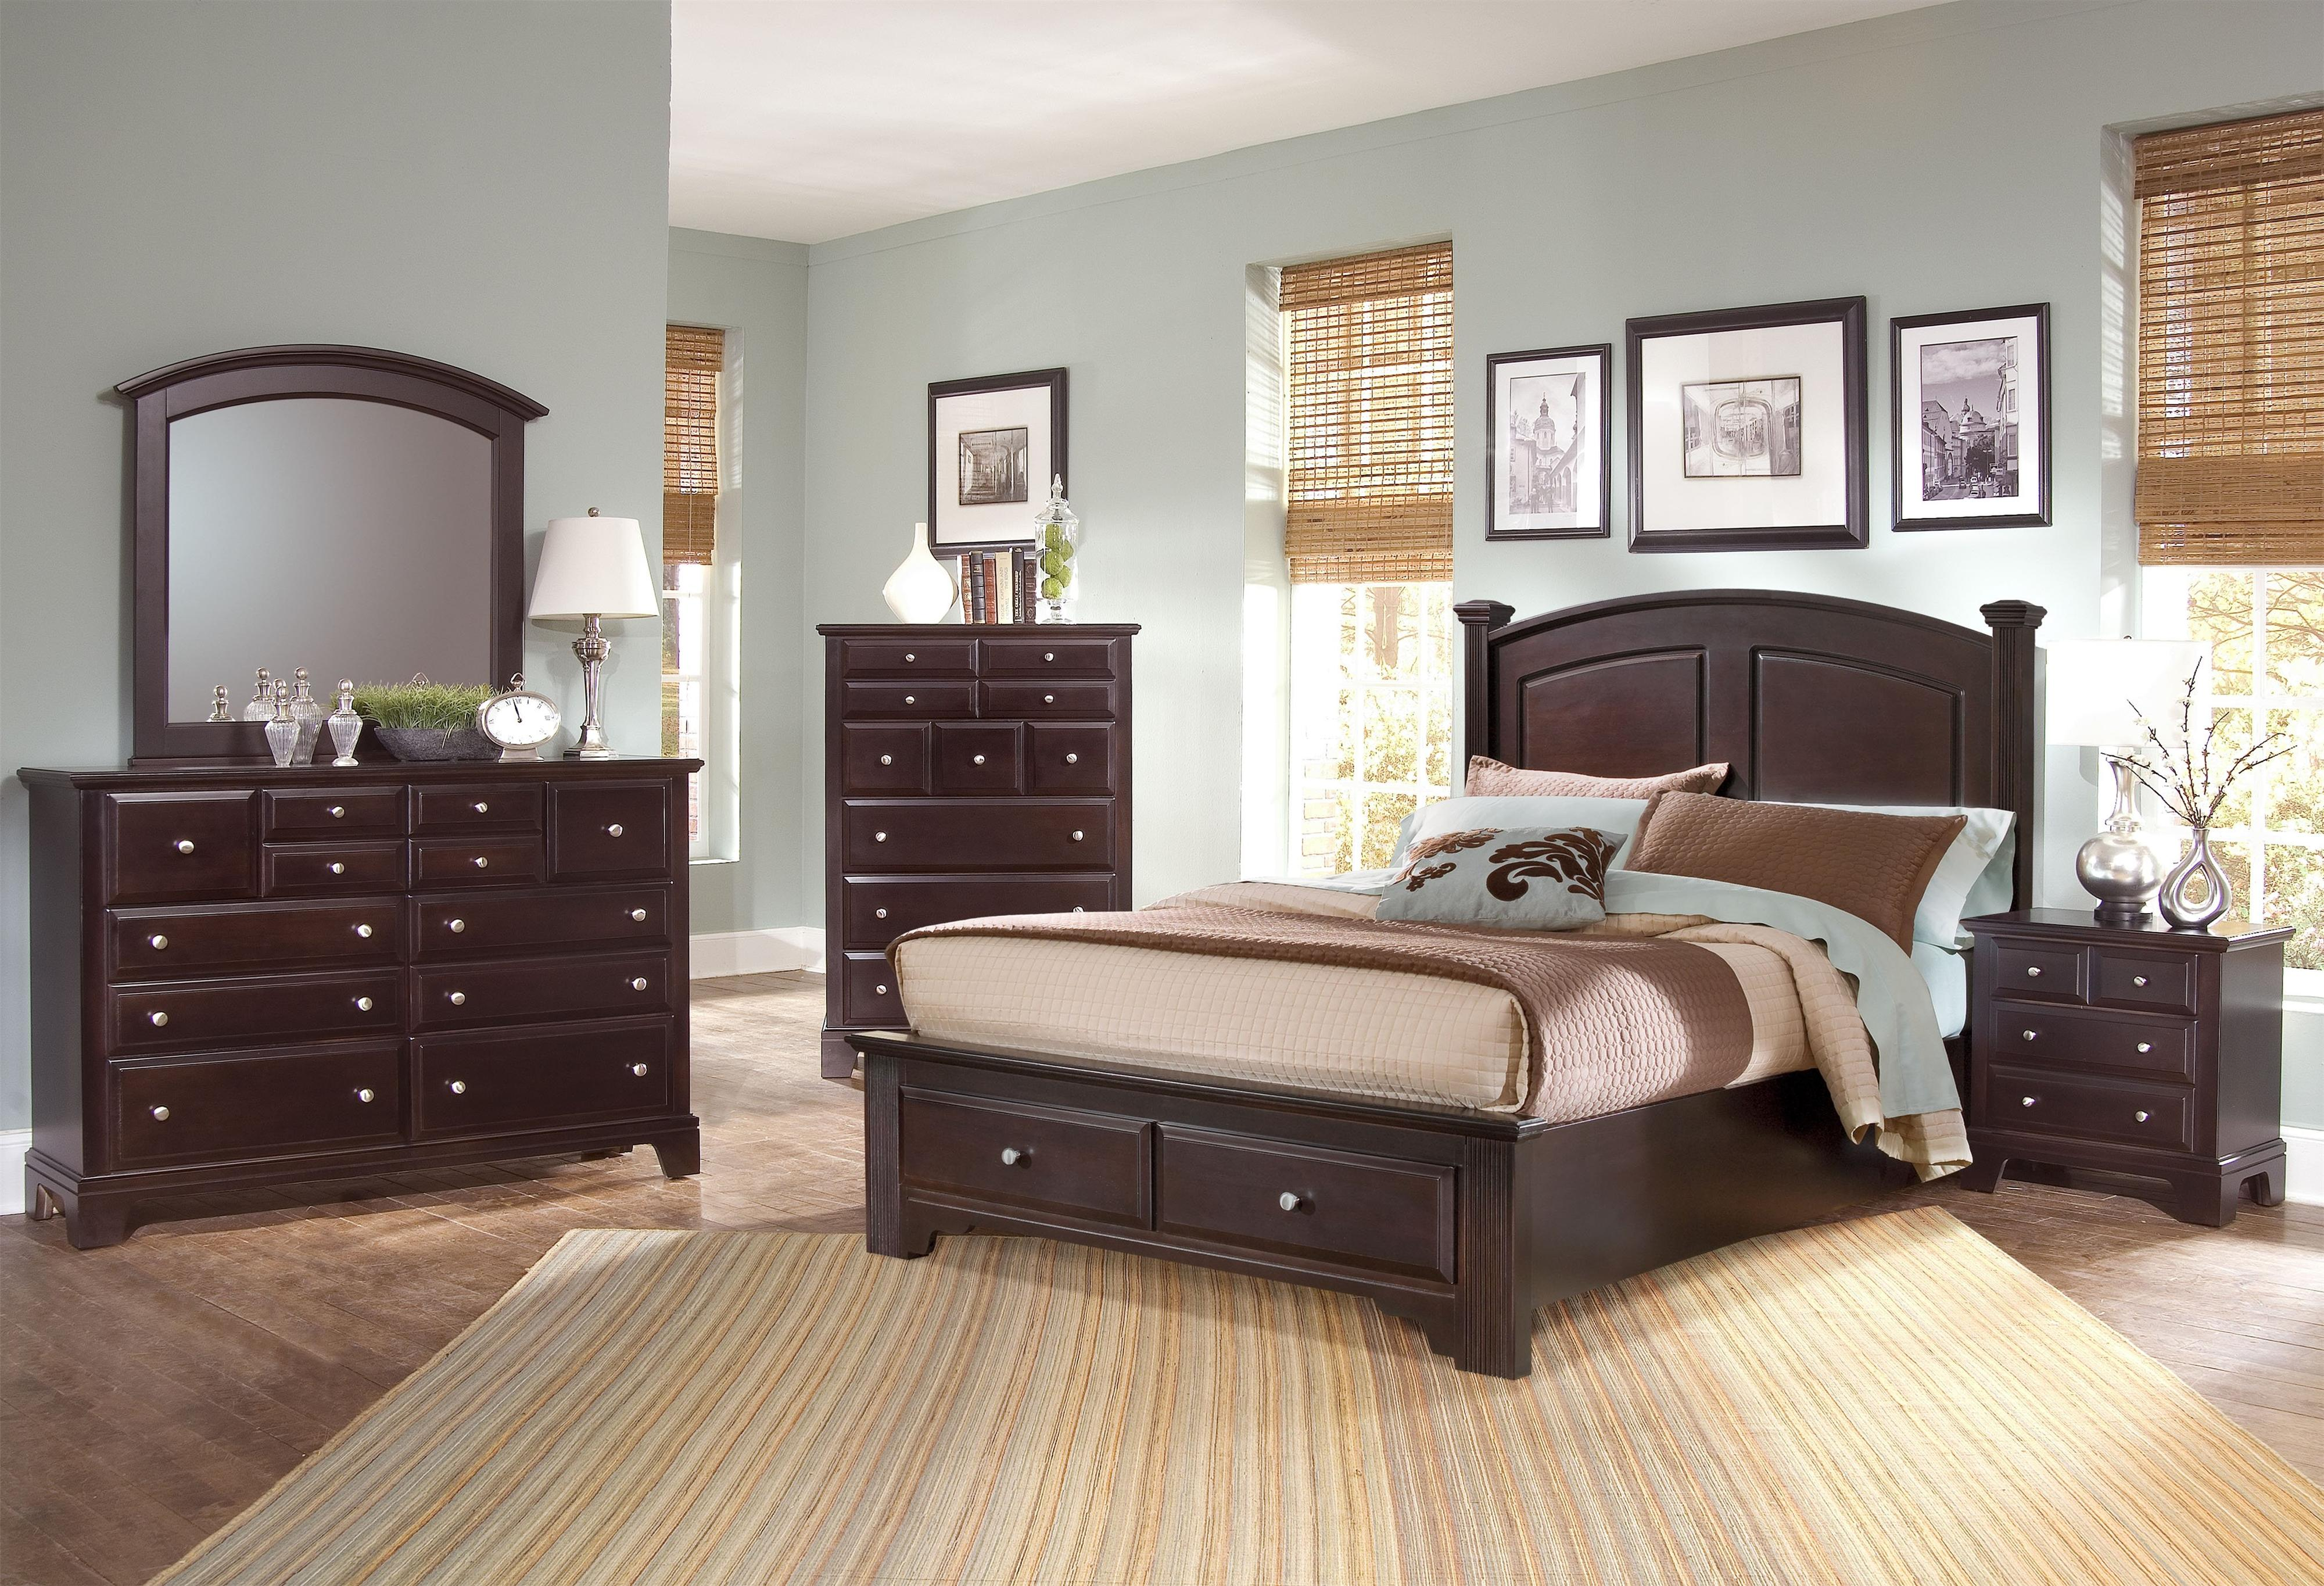 bassett set group transitions furniture vaughan american cherry pic darvin sets bedroom queen